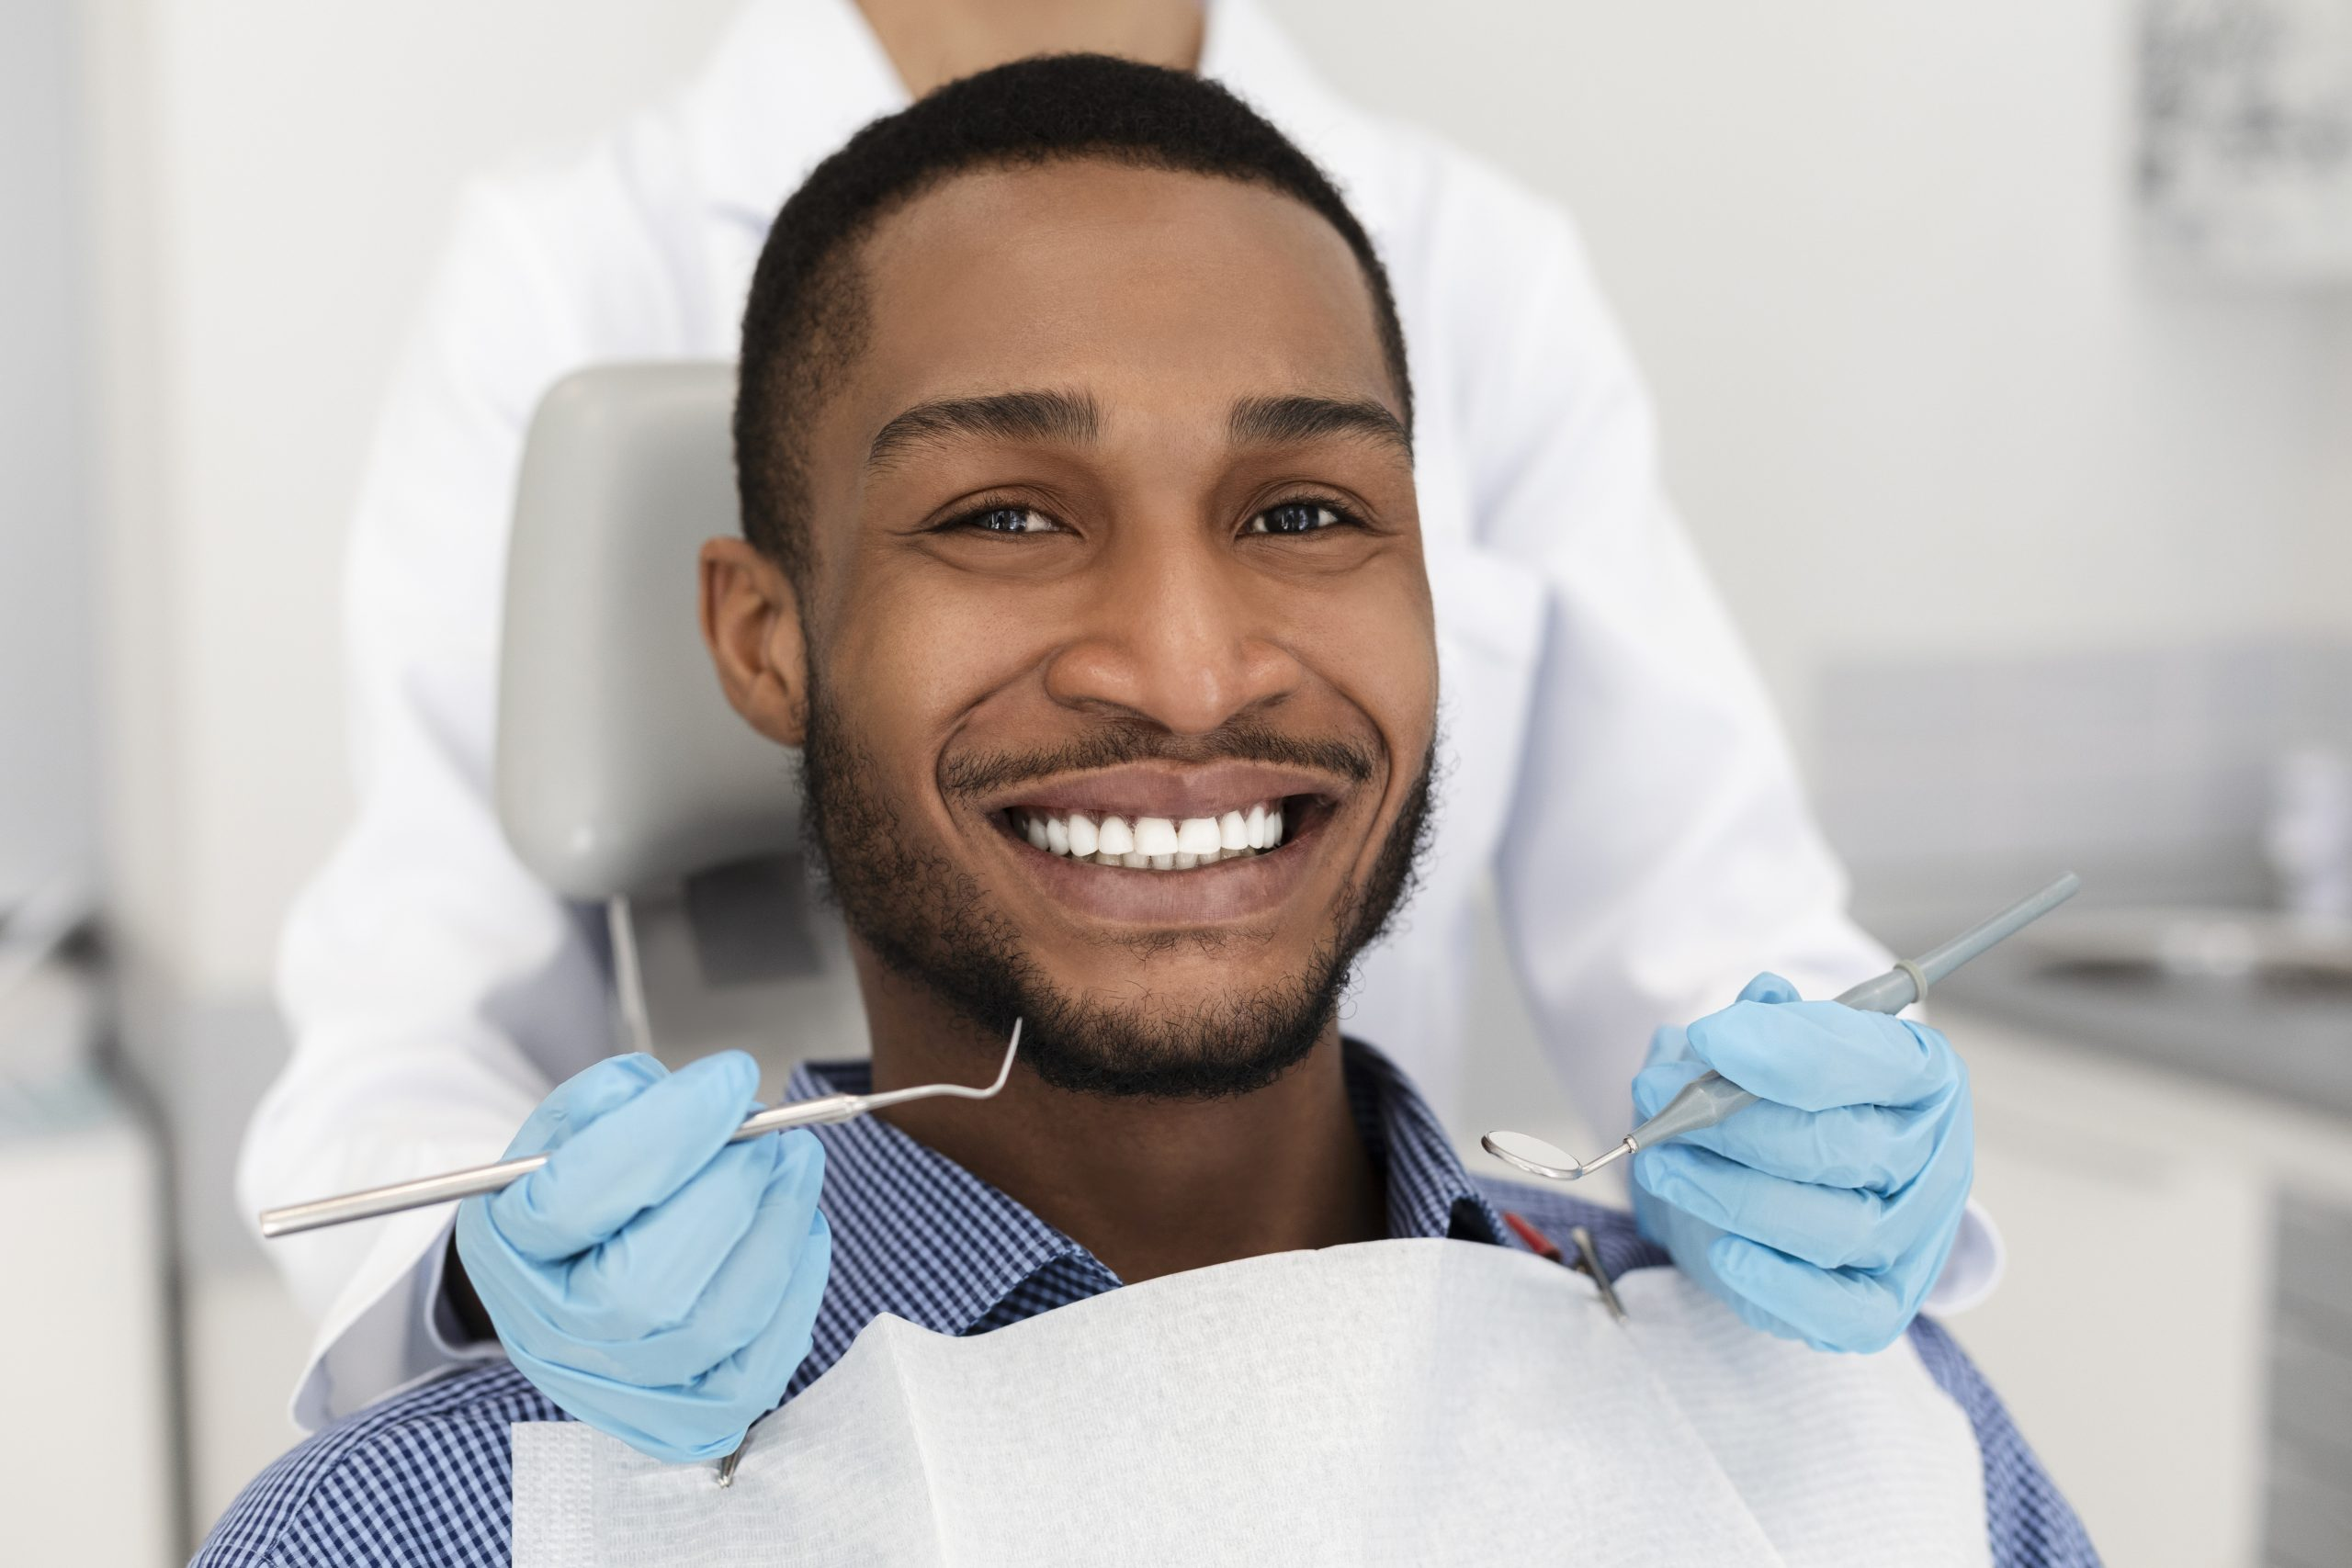 Dental Care Without Insurance in Portland, ME